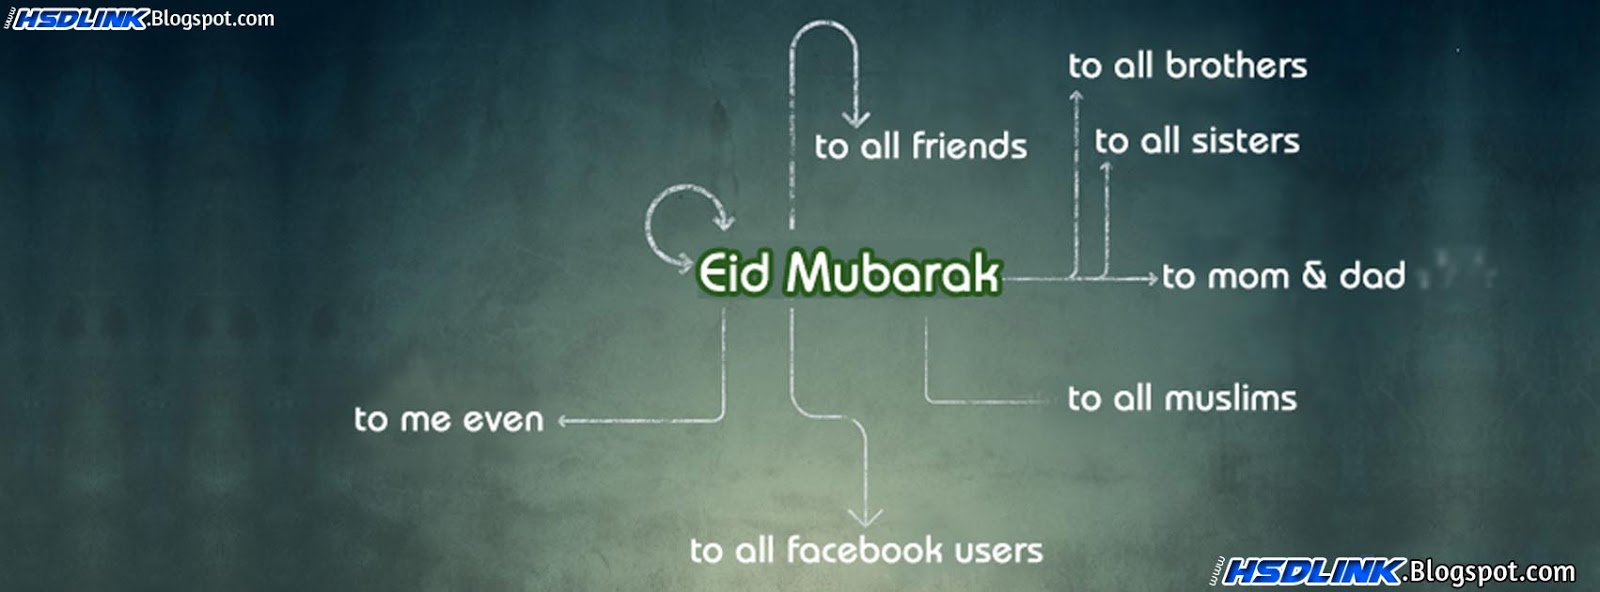 Free Eid Mubarak Cover Timeline Photos For Facebook 2012 2013 2014 2015 2016 2017 Download